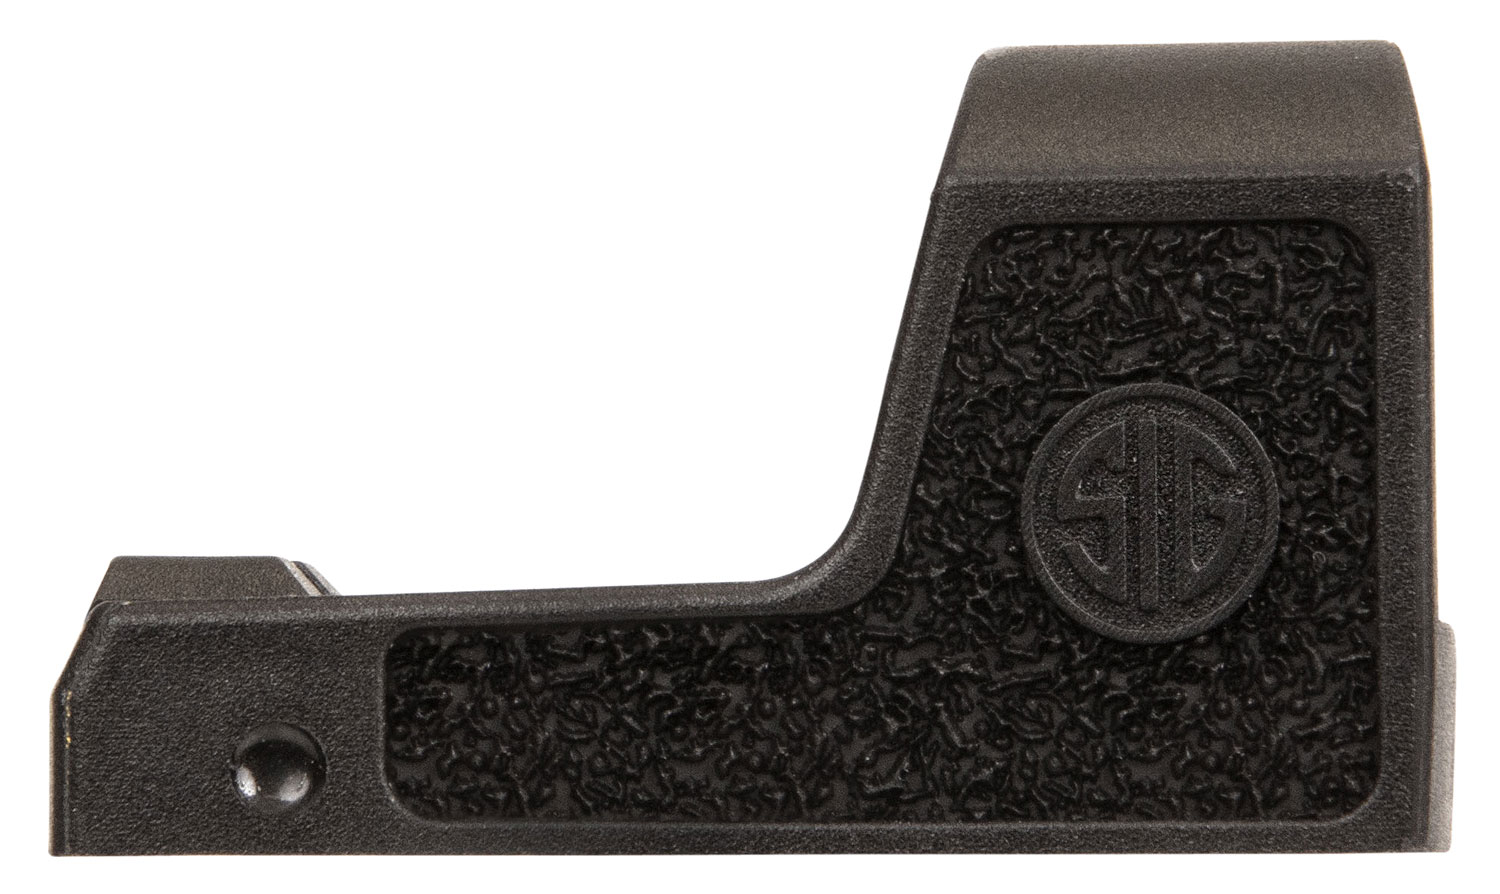 Sig Sauer Electro-Optics SOR01600 RomeoZero Reflex Sight6 MOA Dot Black Textured CR1632